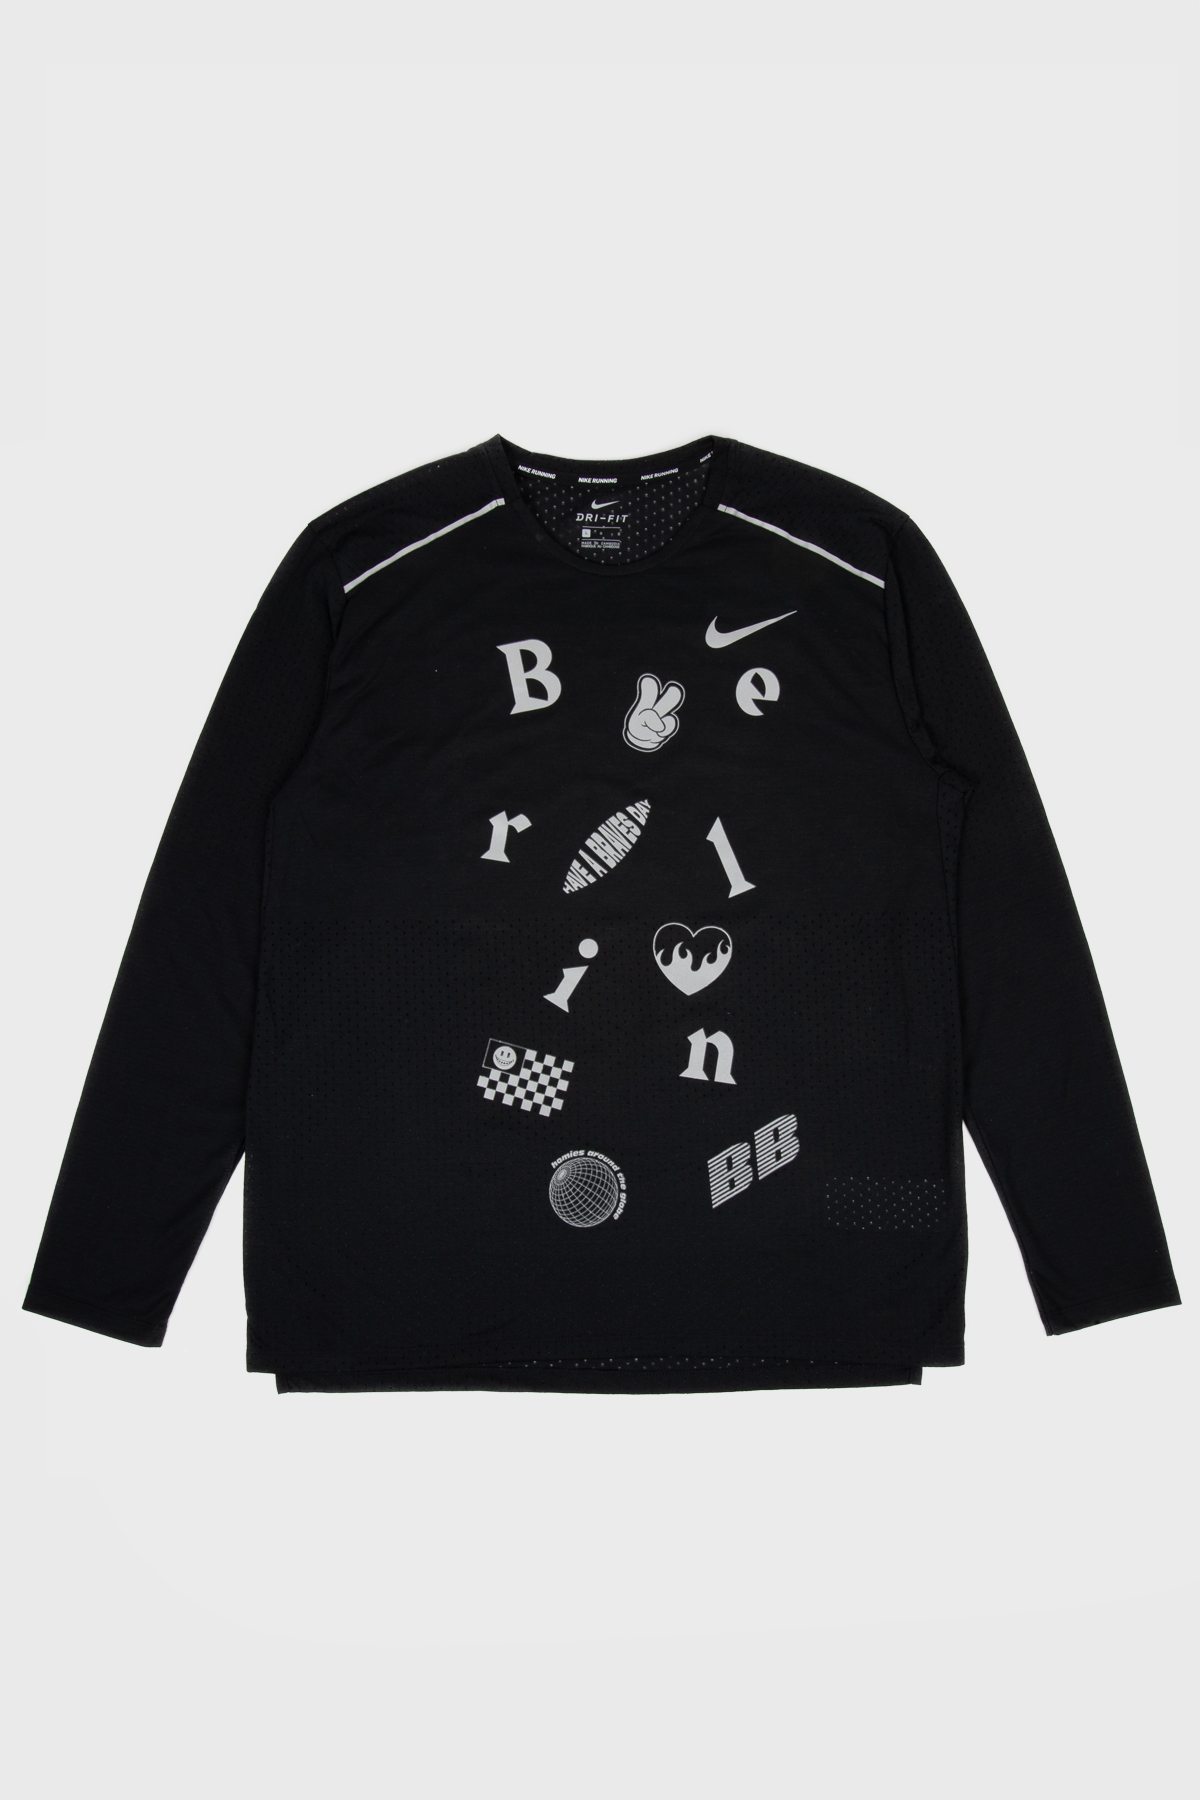 Berlin Braves - Nike Long Sleeve - Black